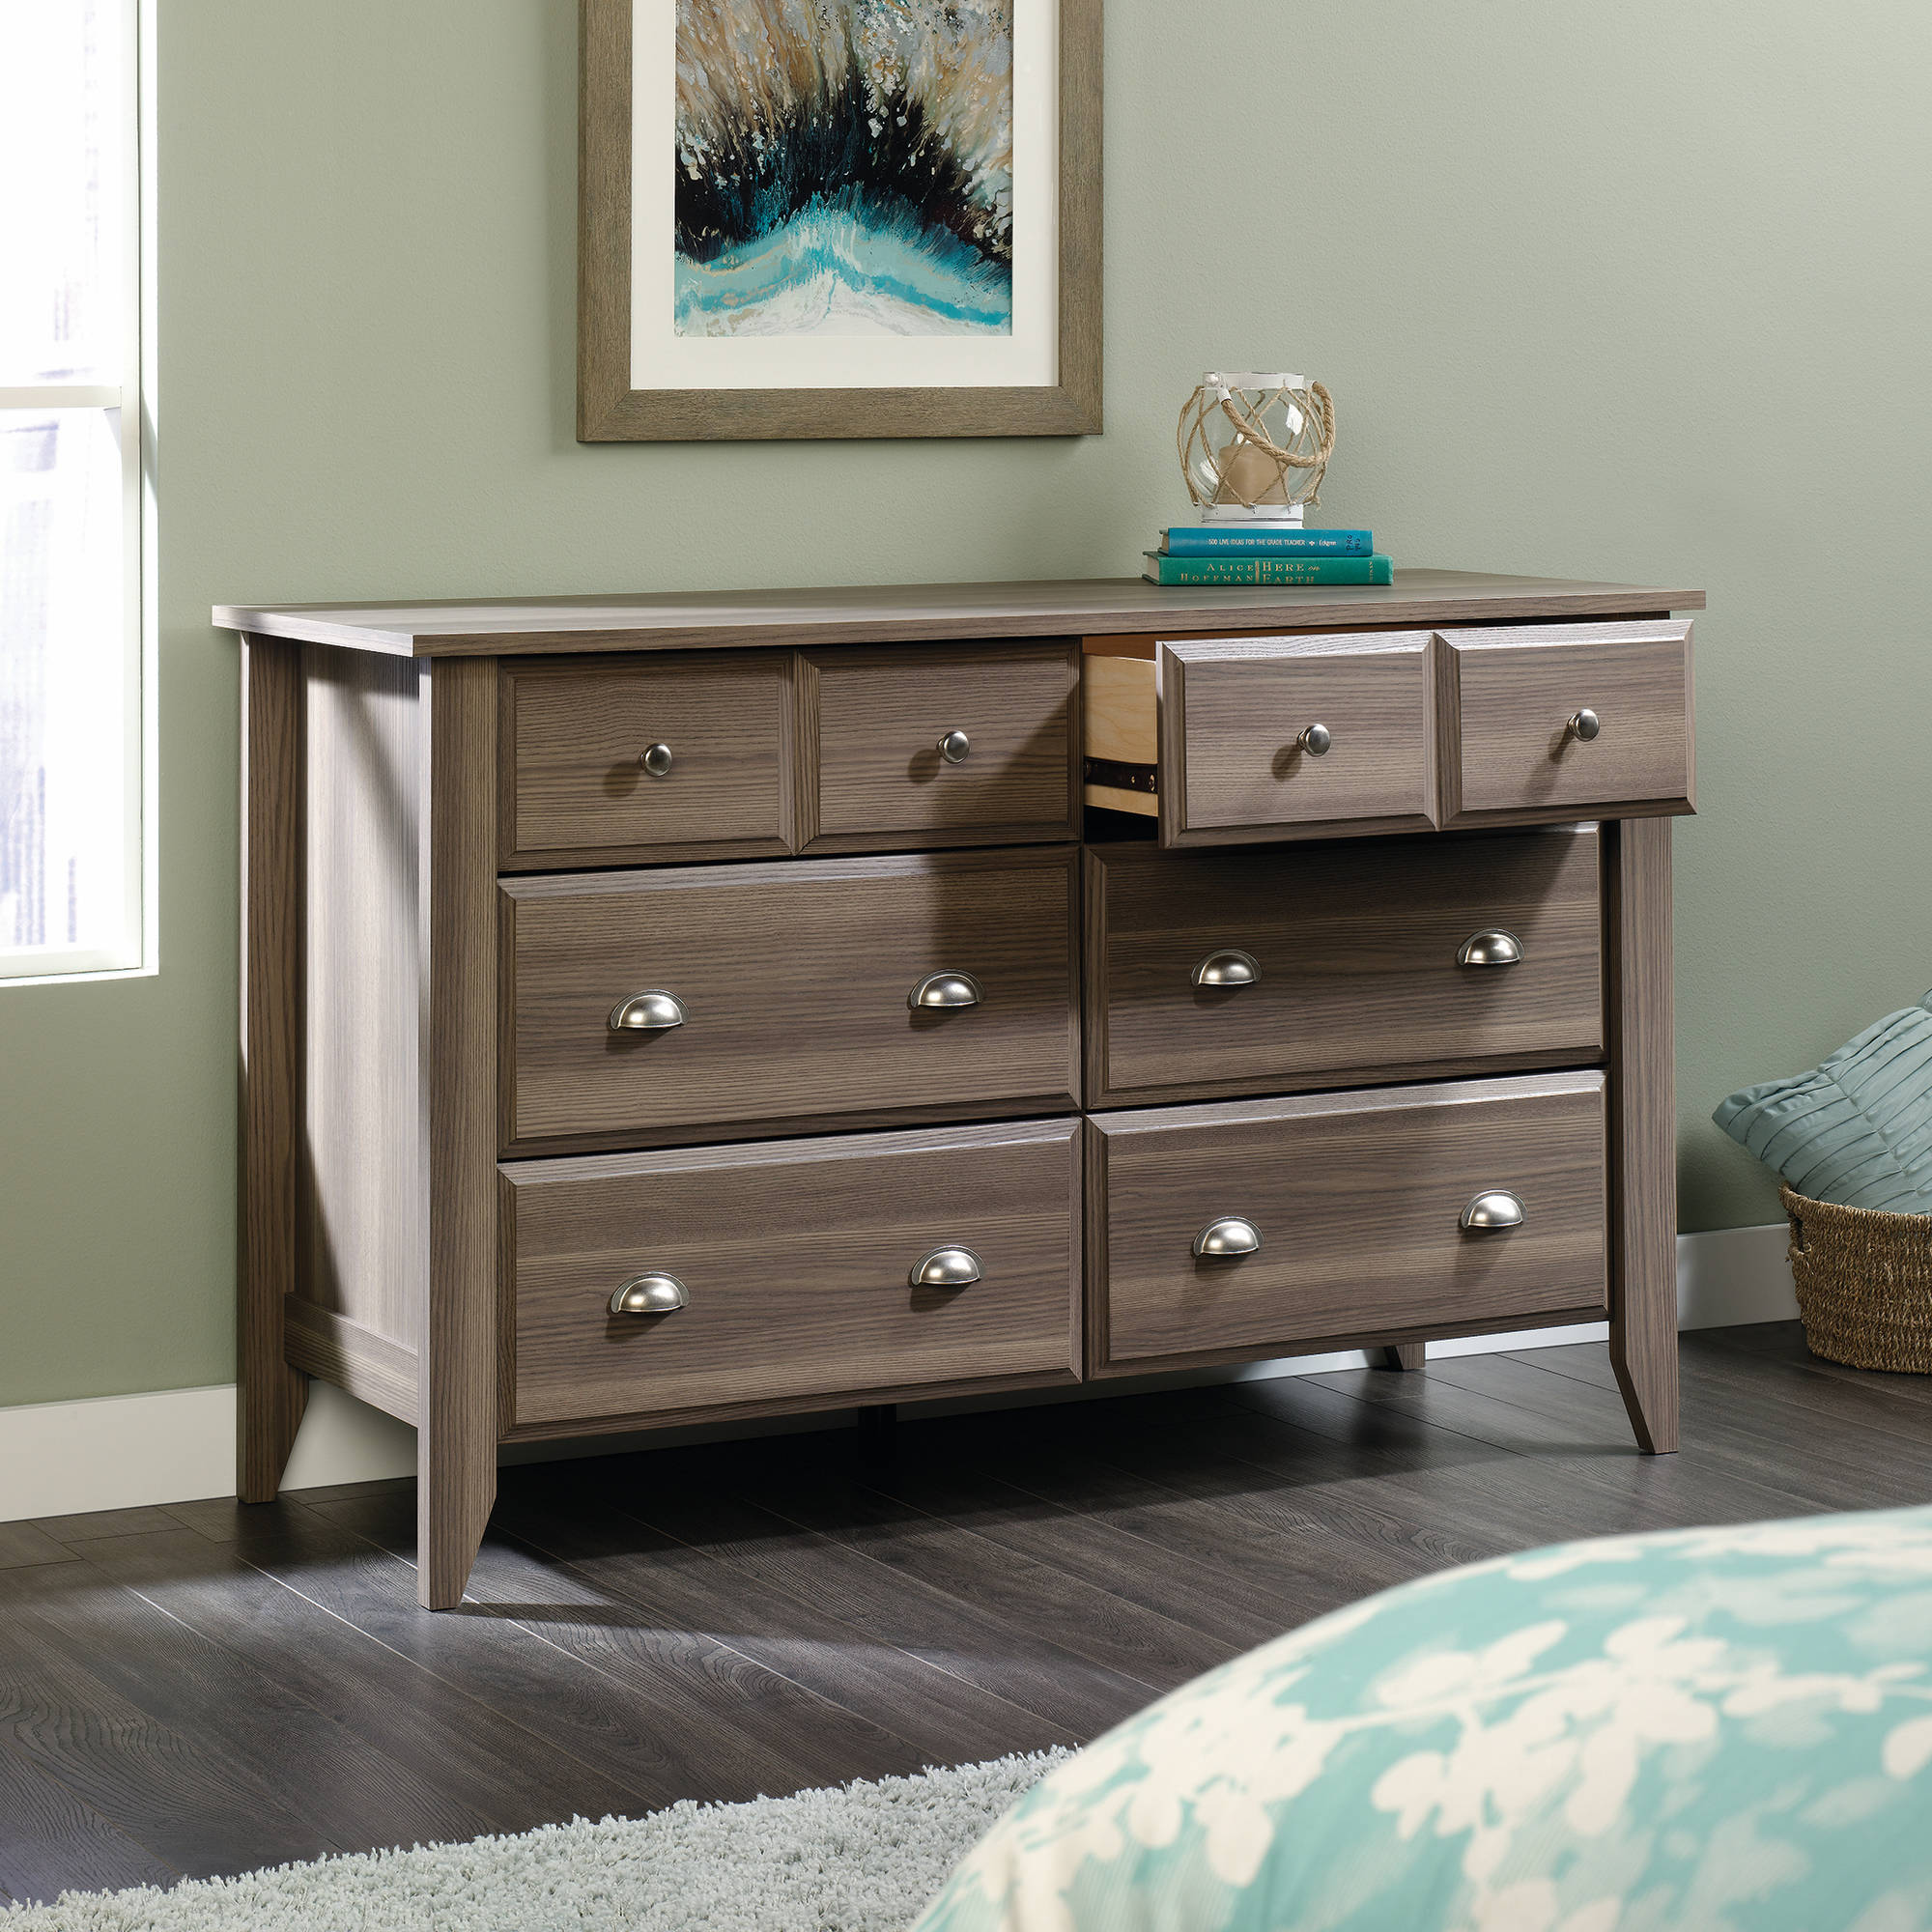 products furniture item chest number drawer drawers home global berkeley of homeworld